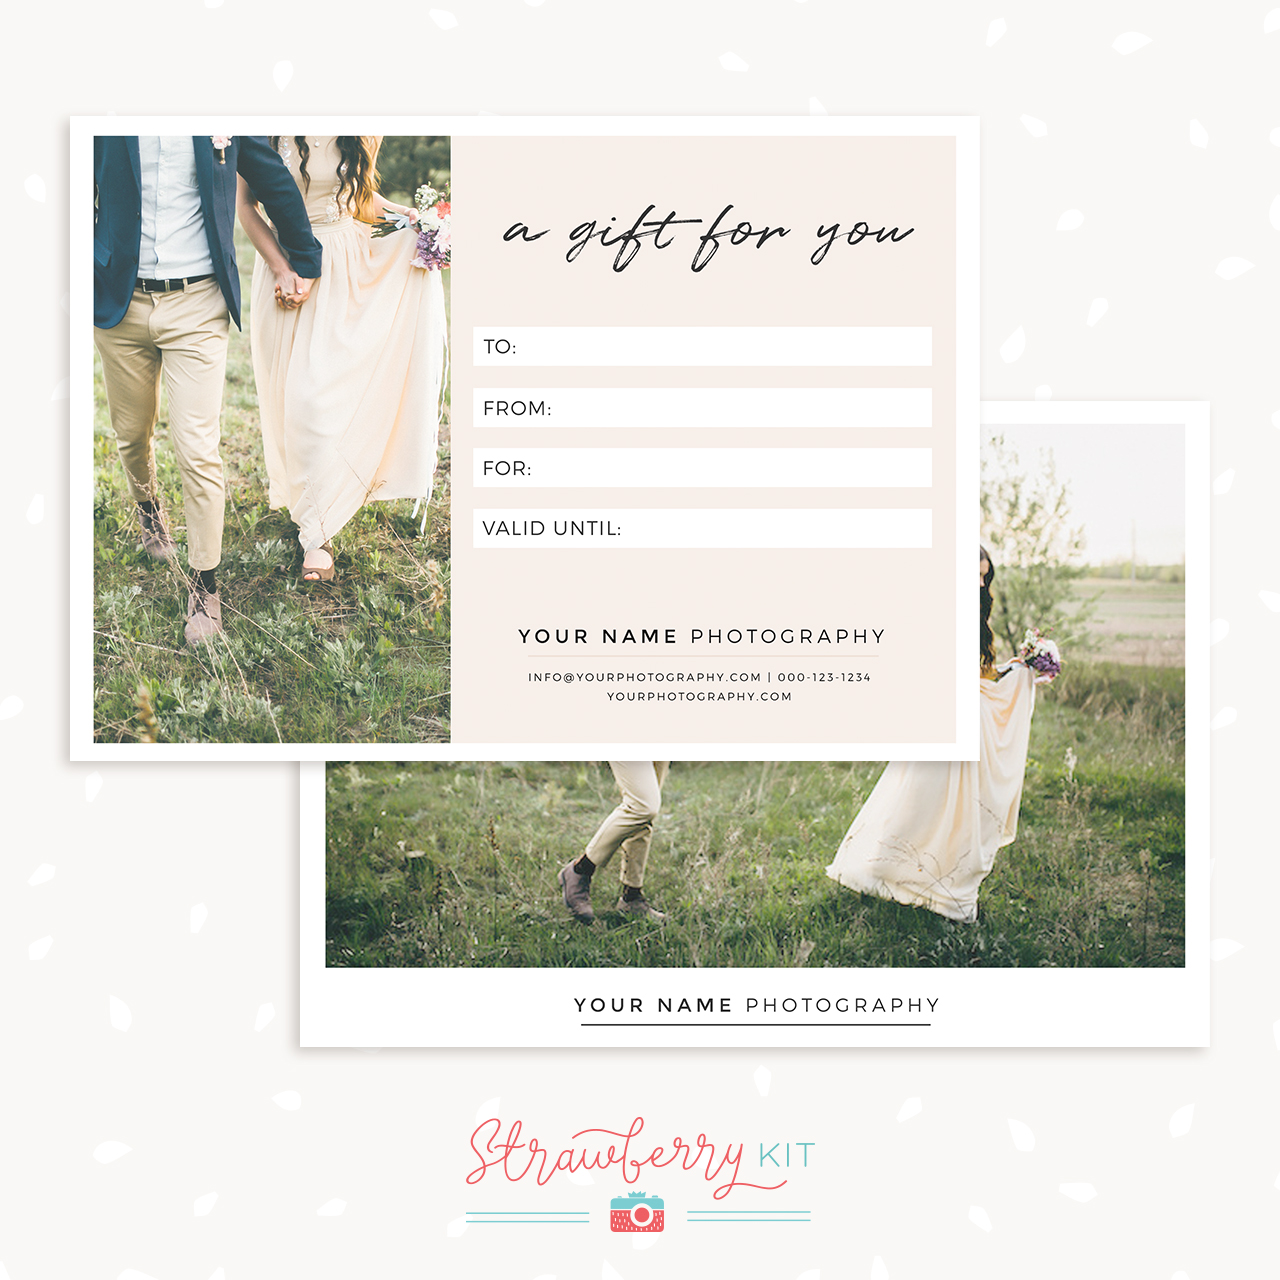 7 X 5 Gift Certificate Template Strawberry Kit